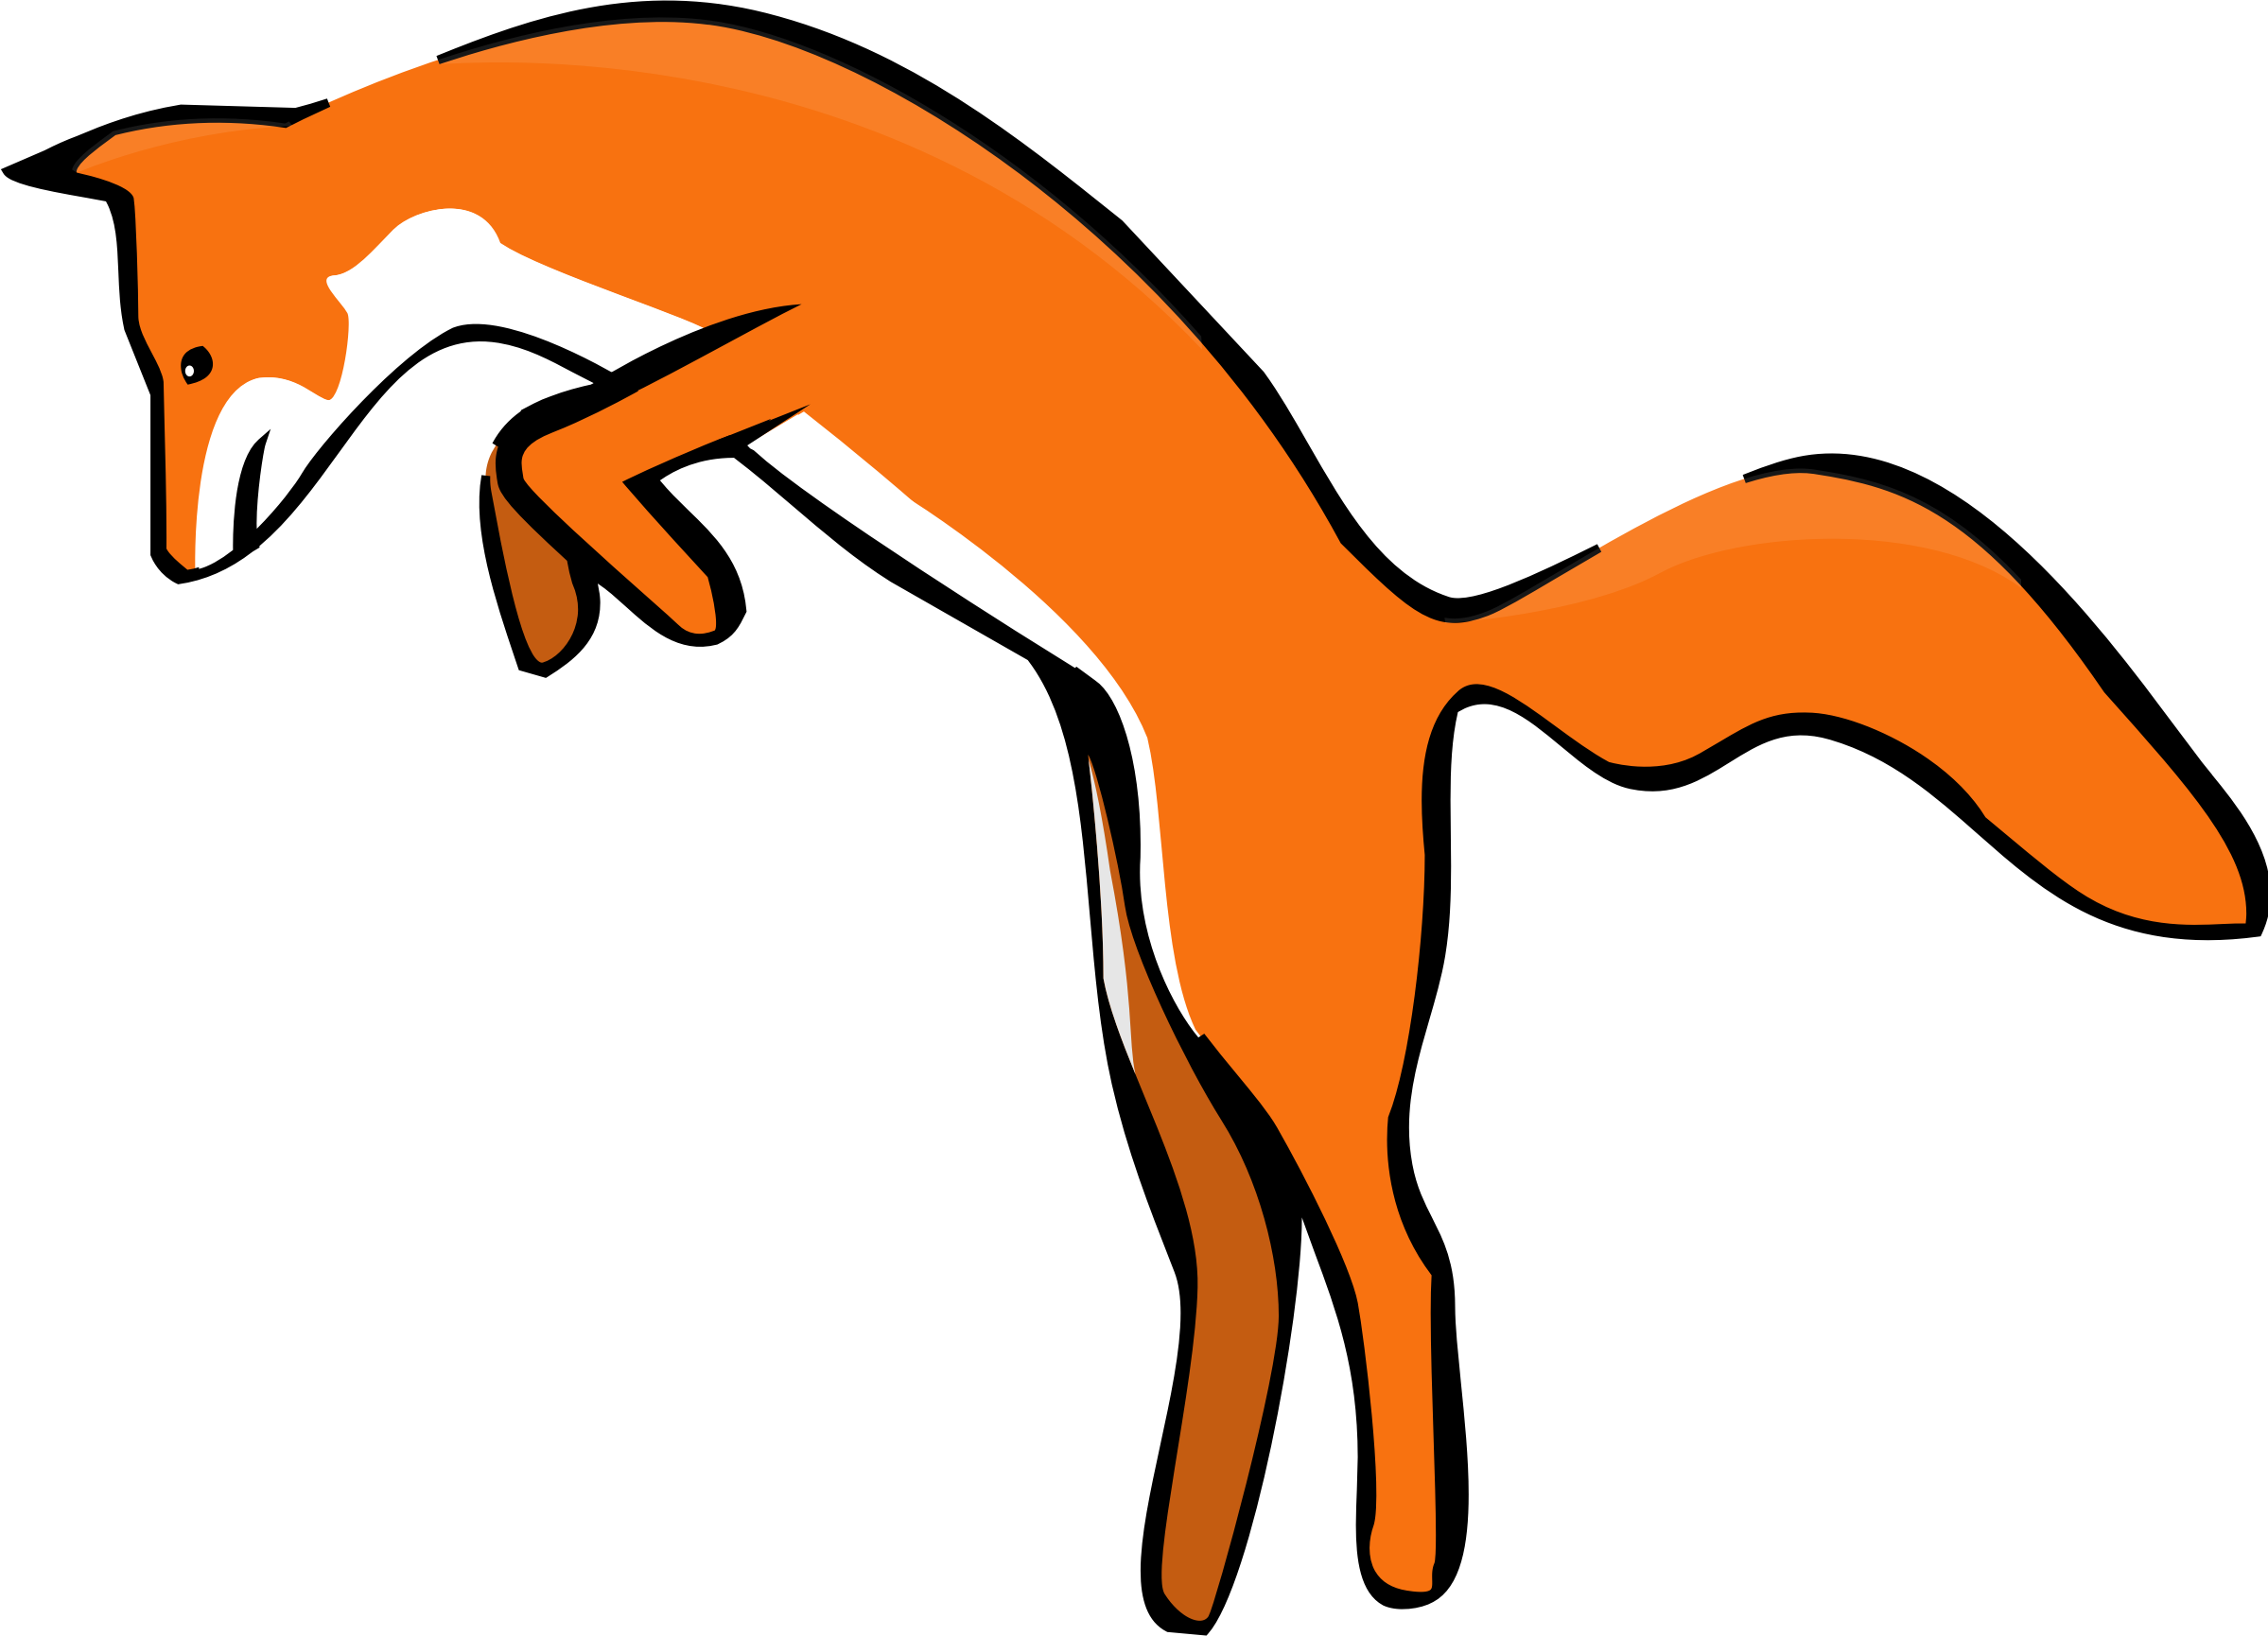 Leaping Red Fox by luchapress